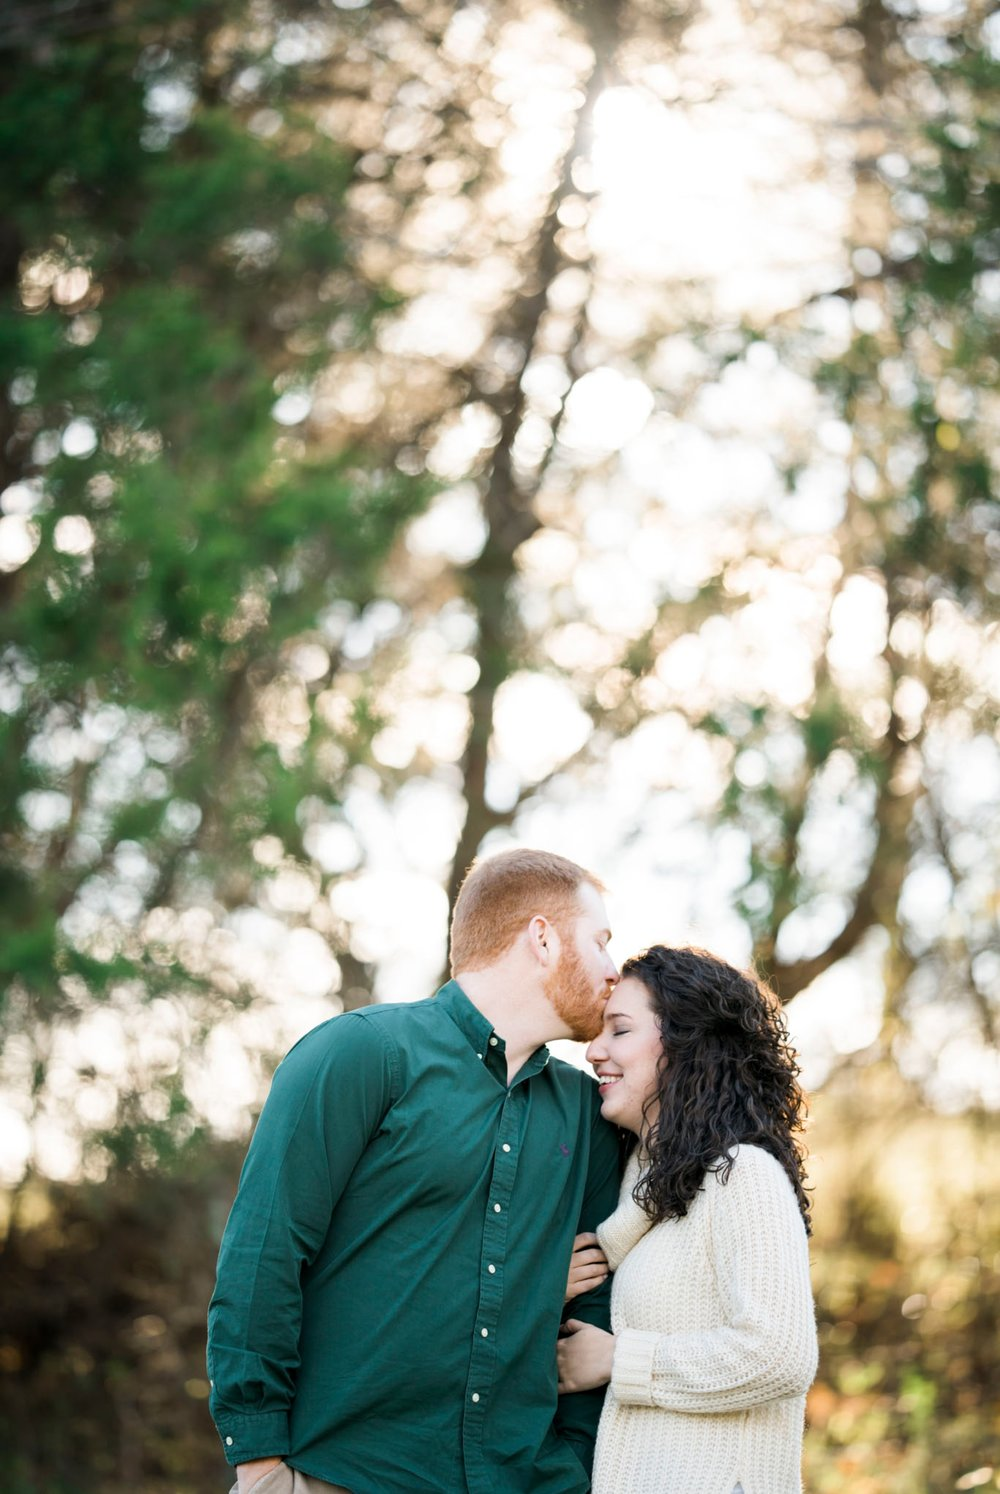 SorellaFarms_EngagementSession_VirginiaweddingPhotographer 9.jpg